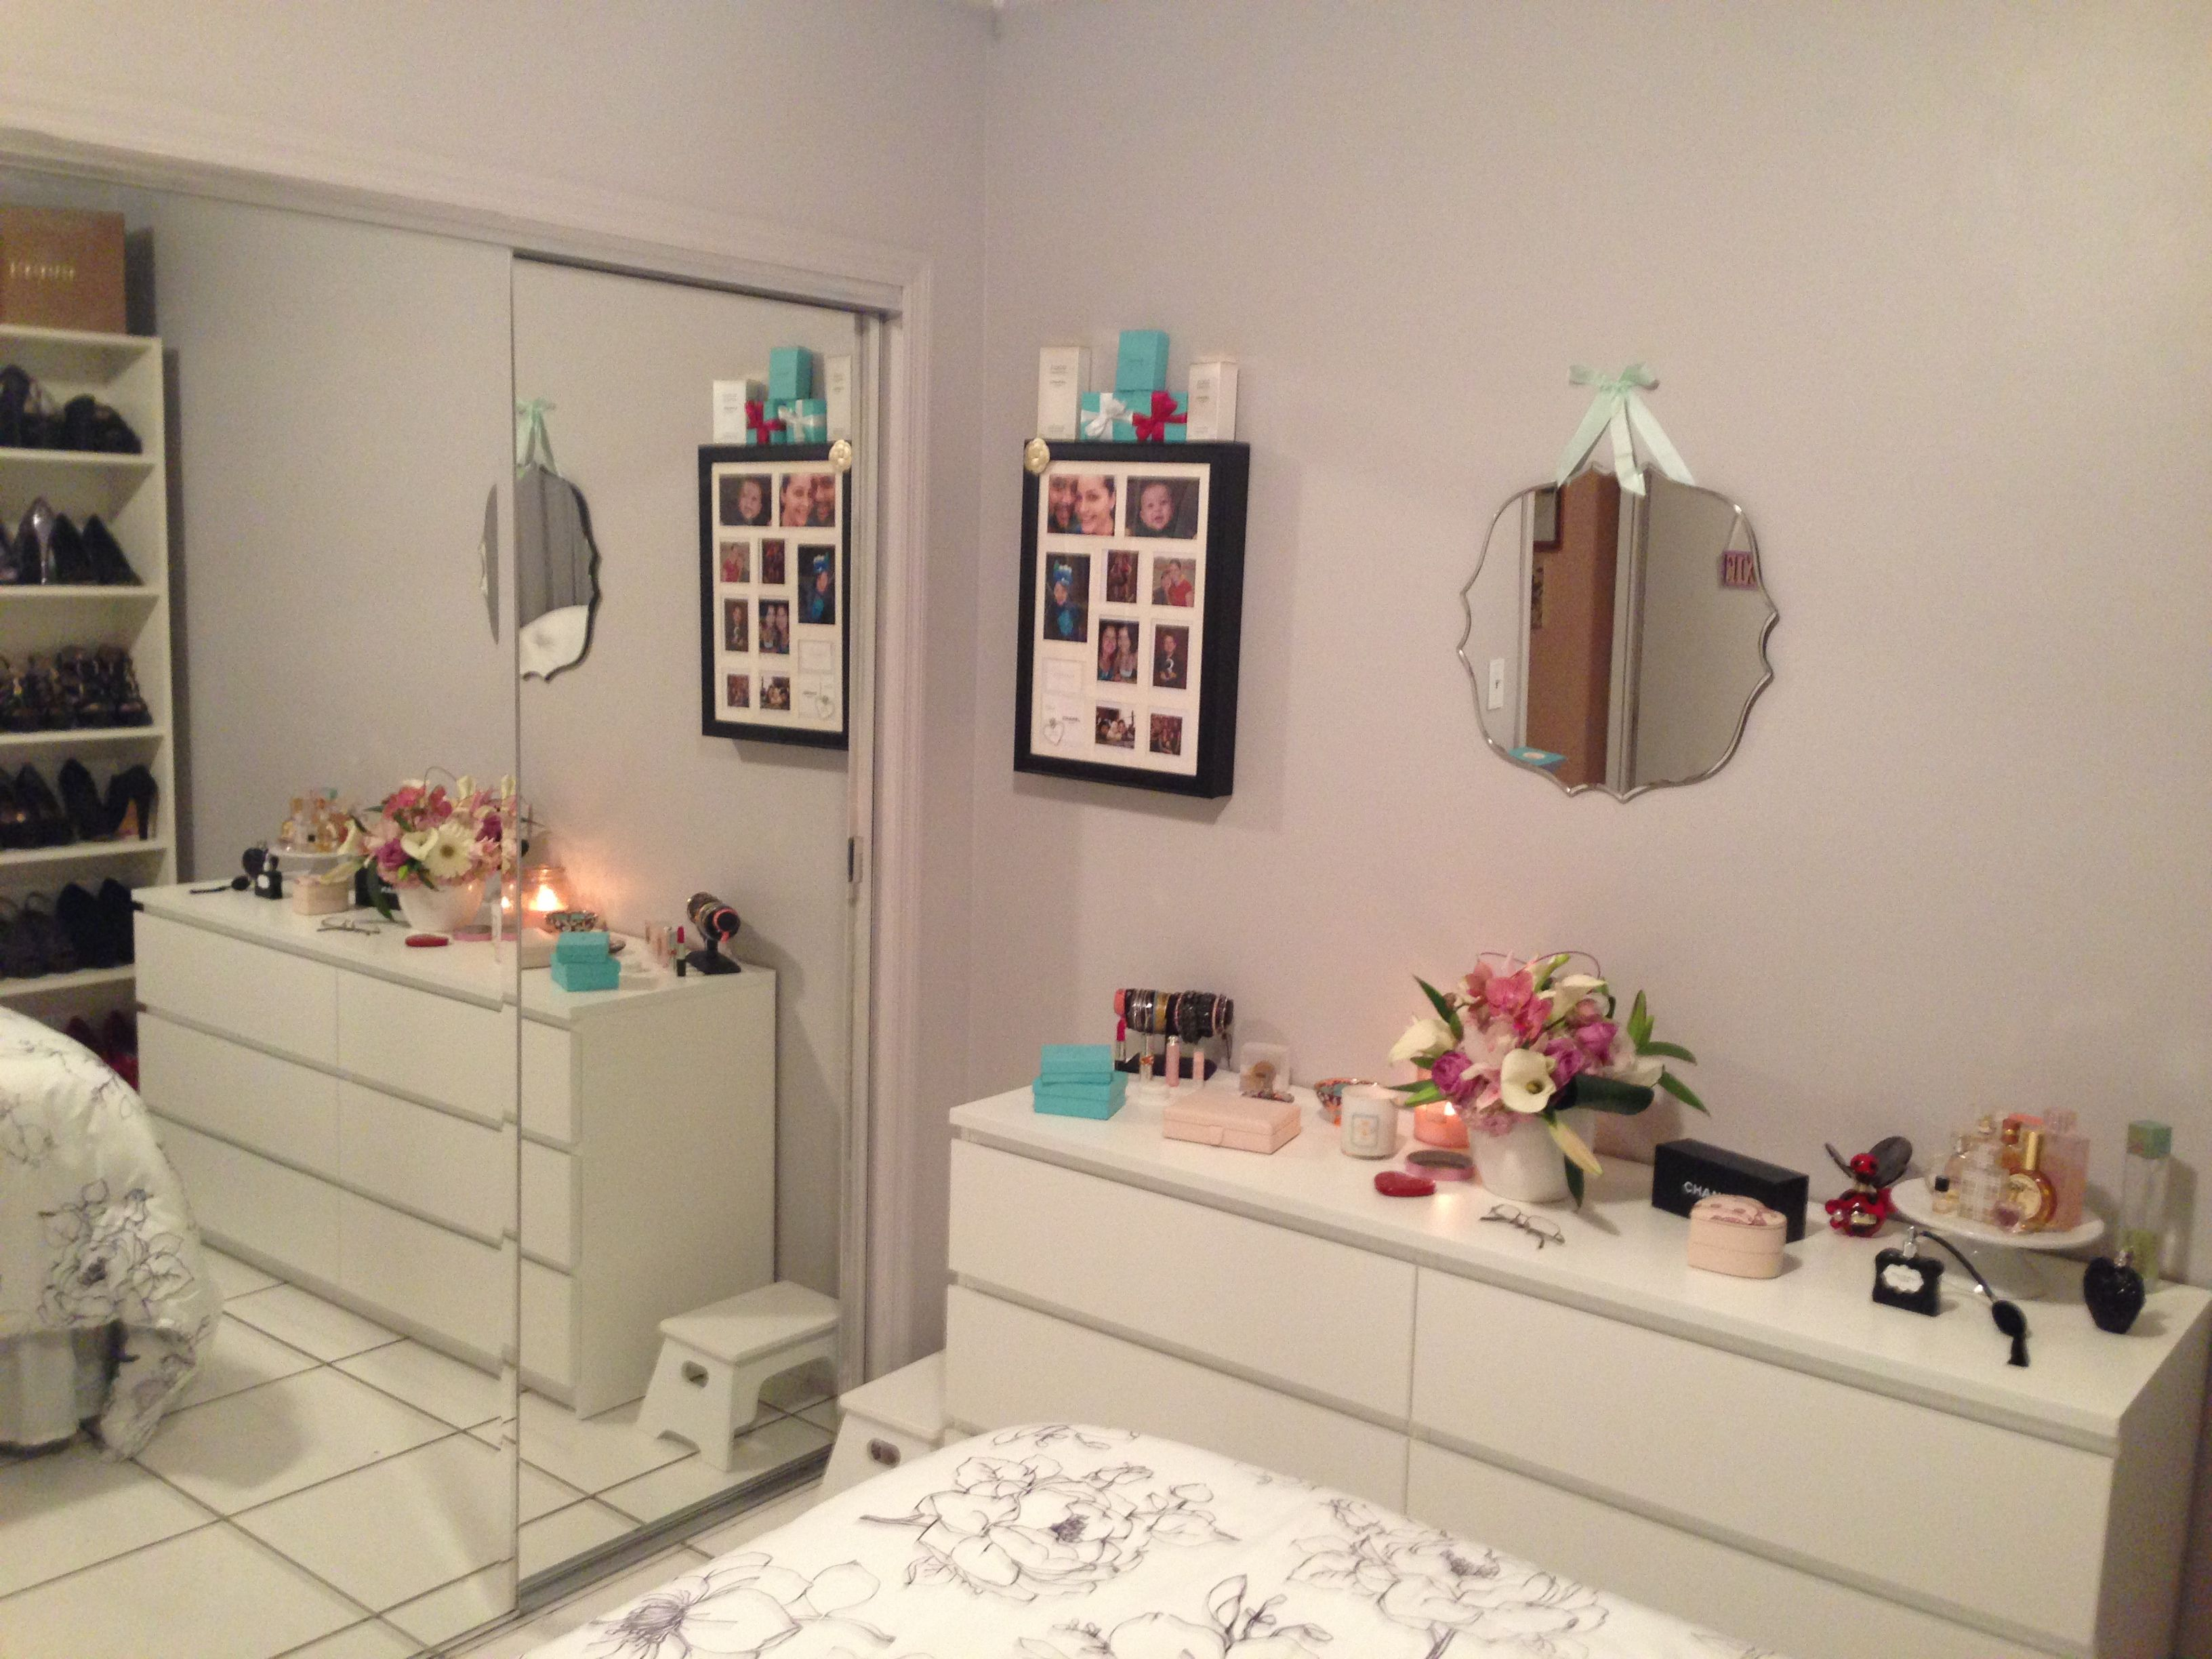 Ikea Malm Dresser. Target Wall Mirror, Photo Jewelry Box, Billy Book Cases.